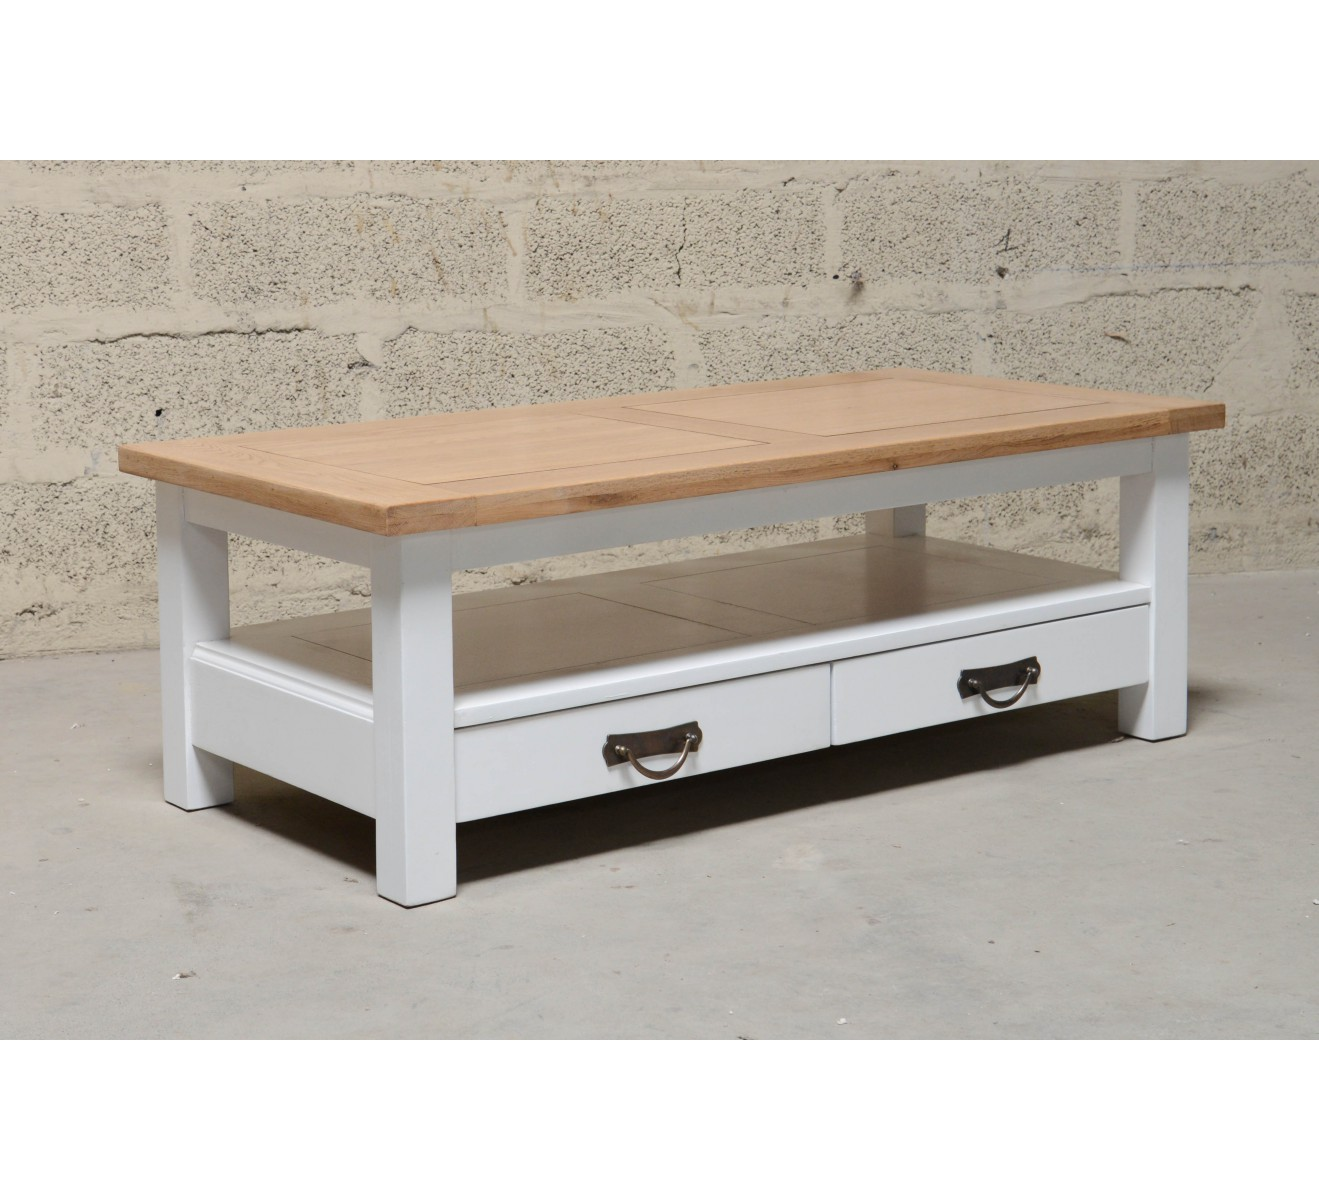 Table basse bi couleur avec tiroirs rectangulaire ch ne massif destockage - Destockage table basse ...